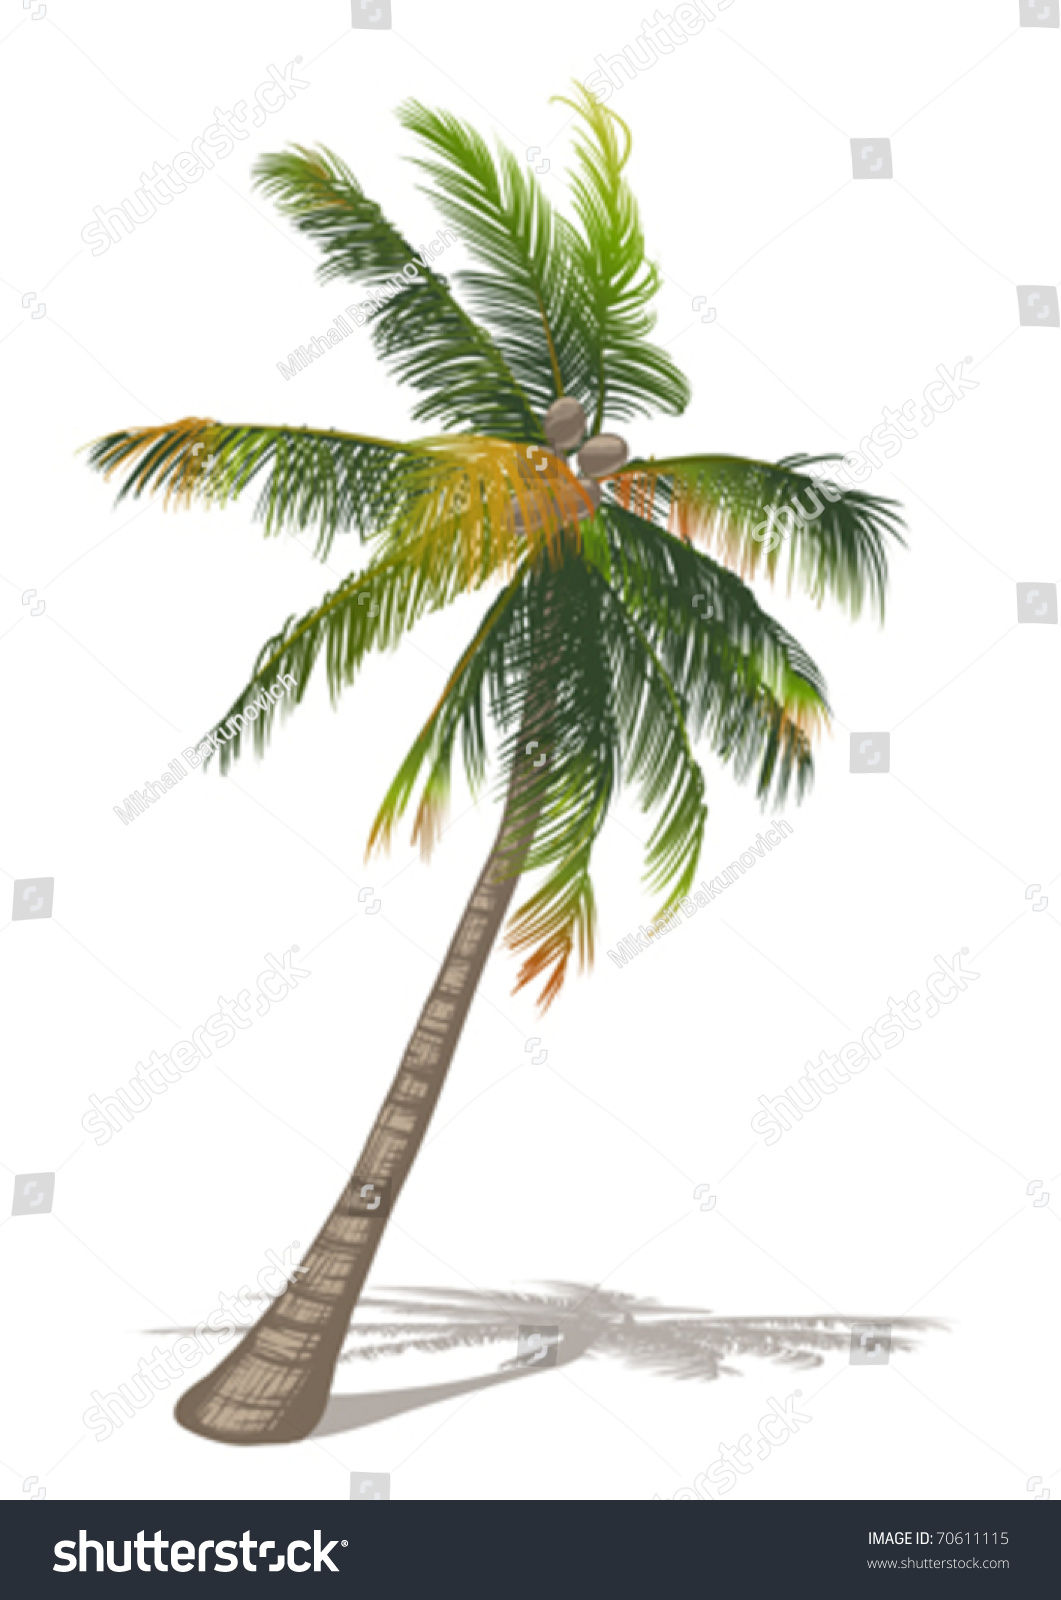 coconut palm tree The coconut palm tree is the world's symbol for relaxation you can grow your very own by meeting these conditions and it will reward you with bountiful fruits.